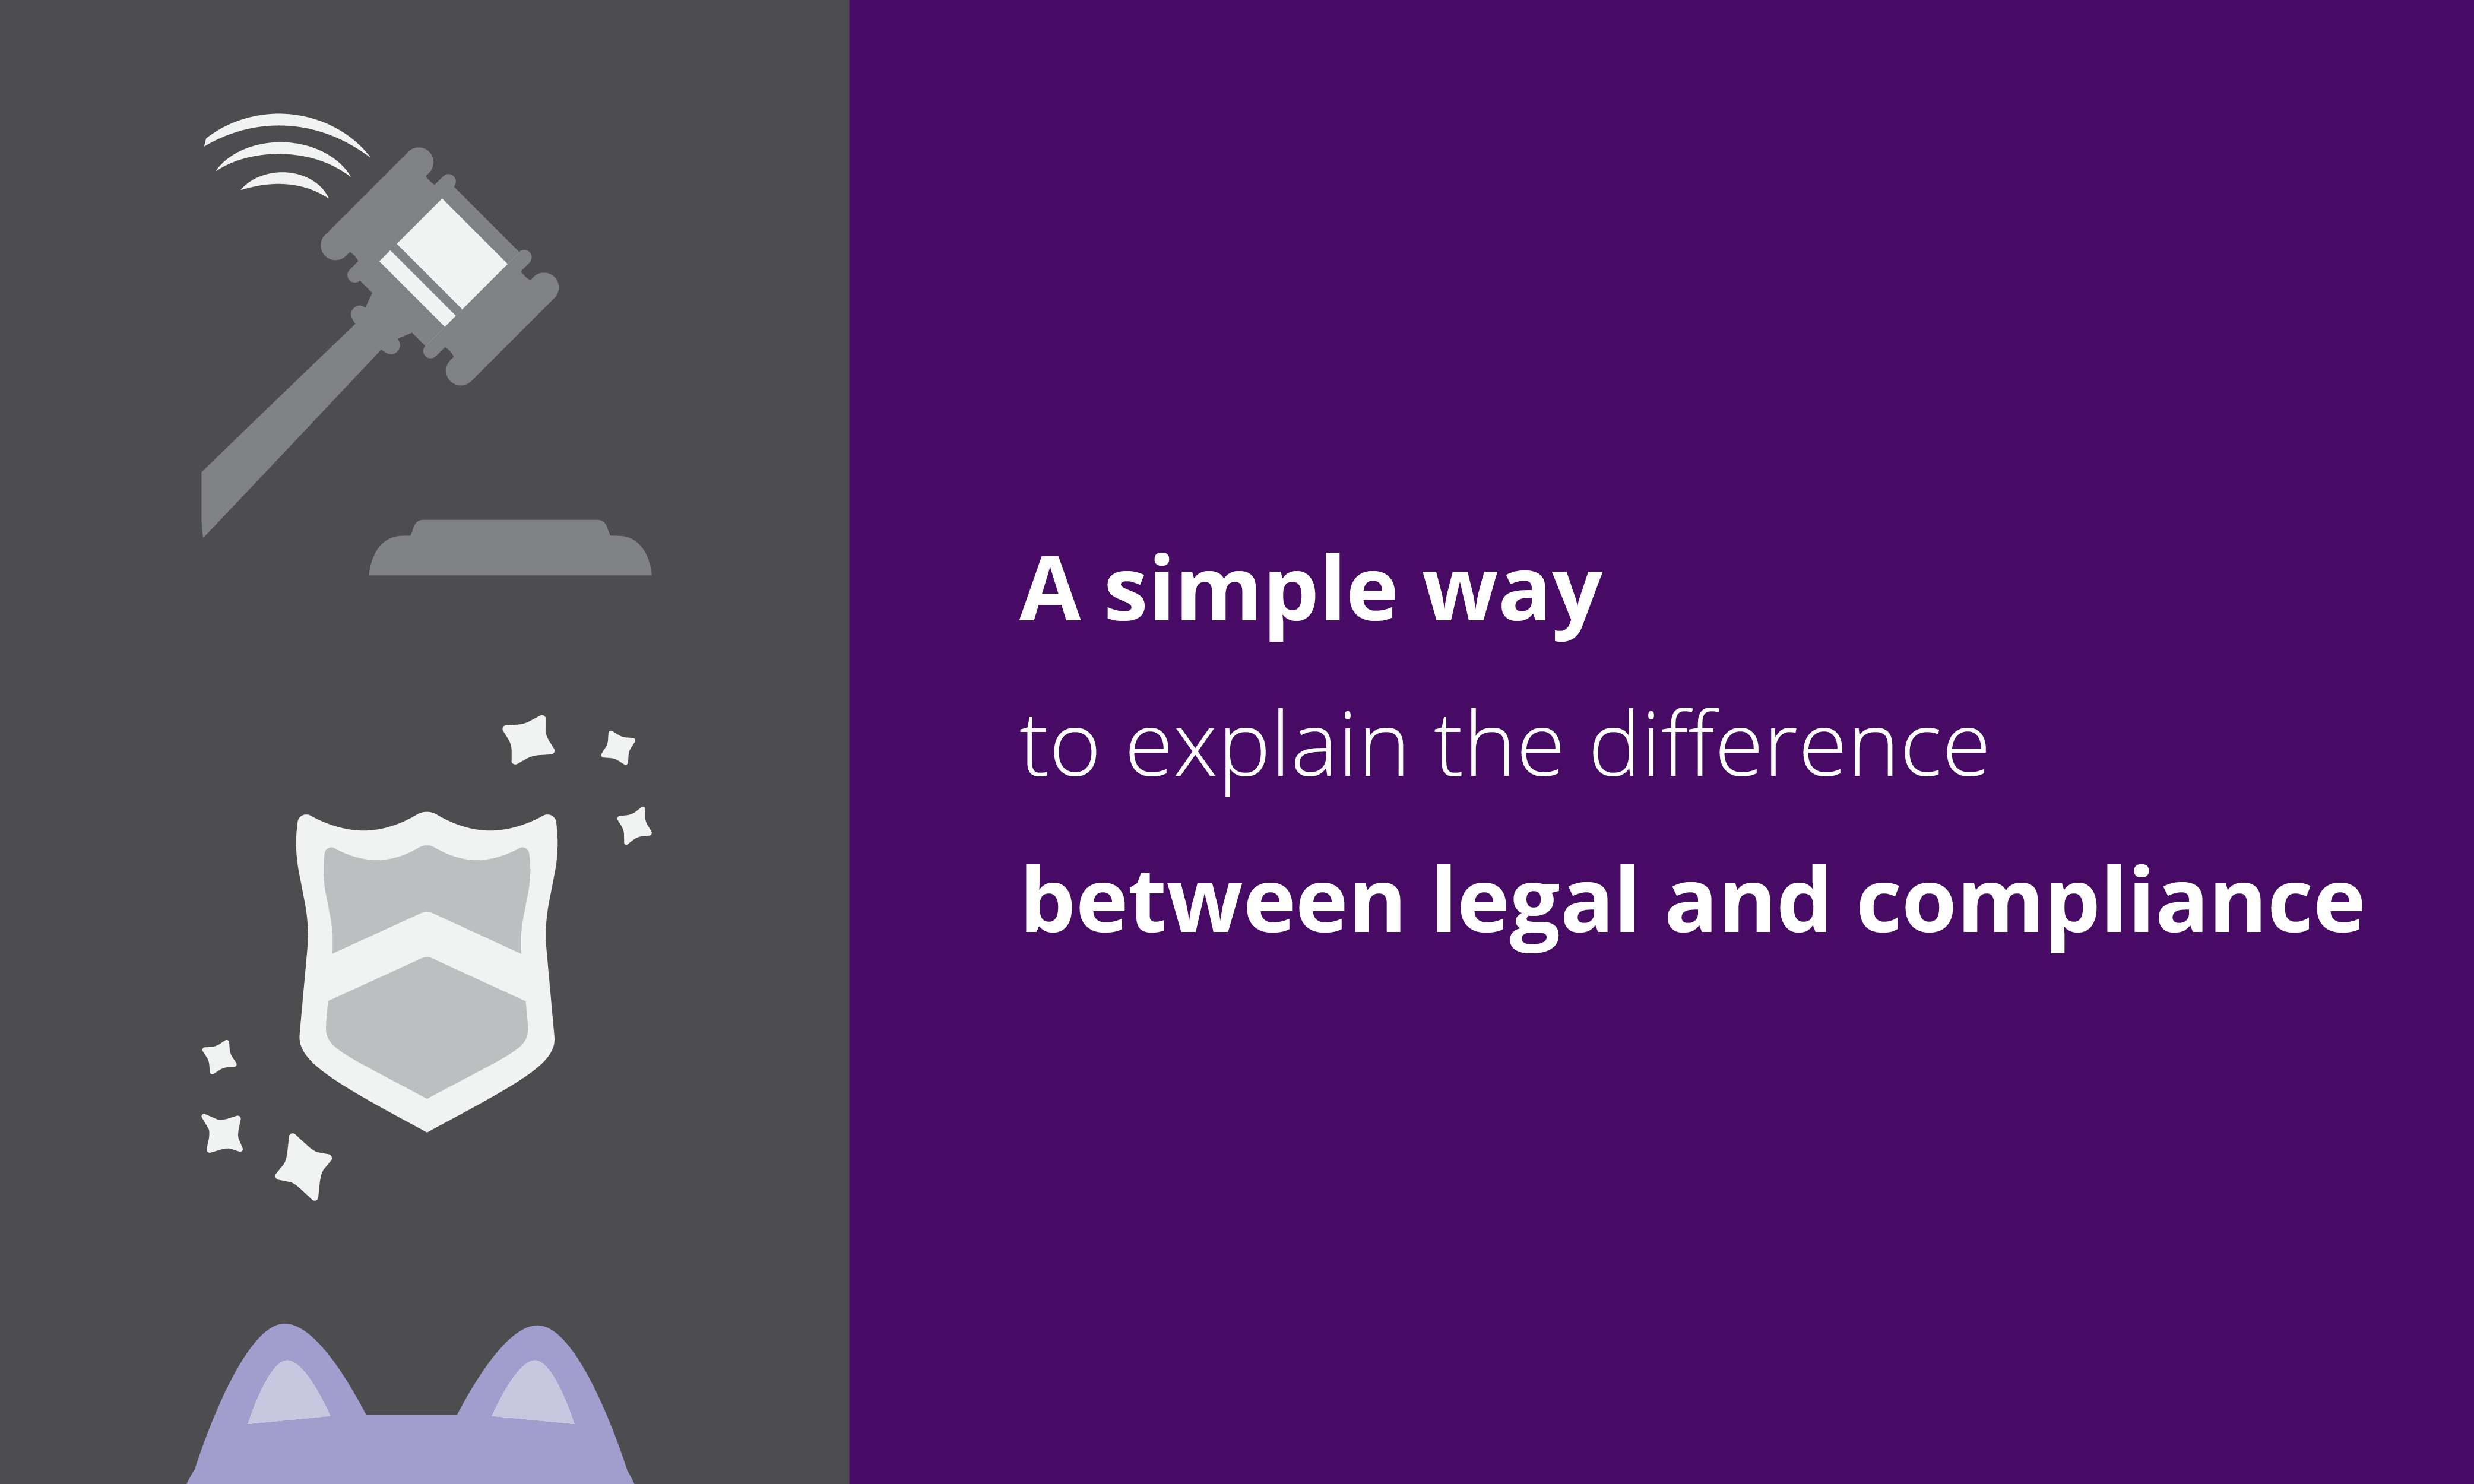 Legal-vs-compliance-analogy-blog-2